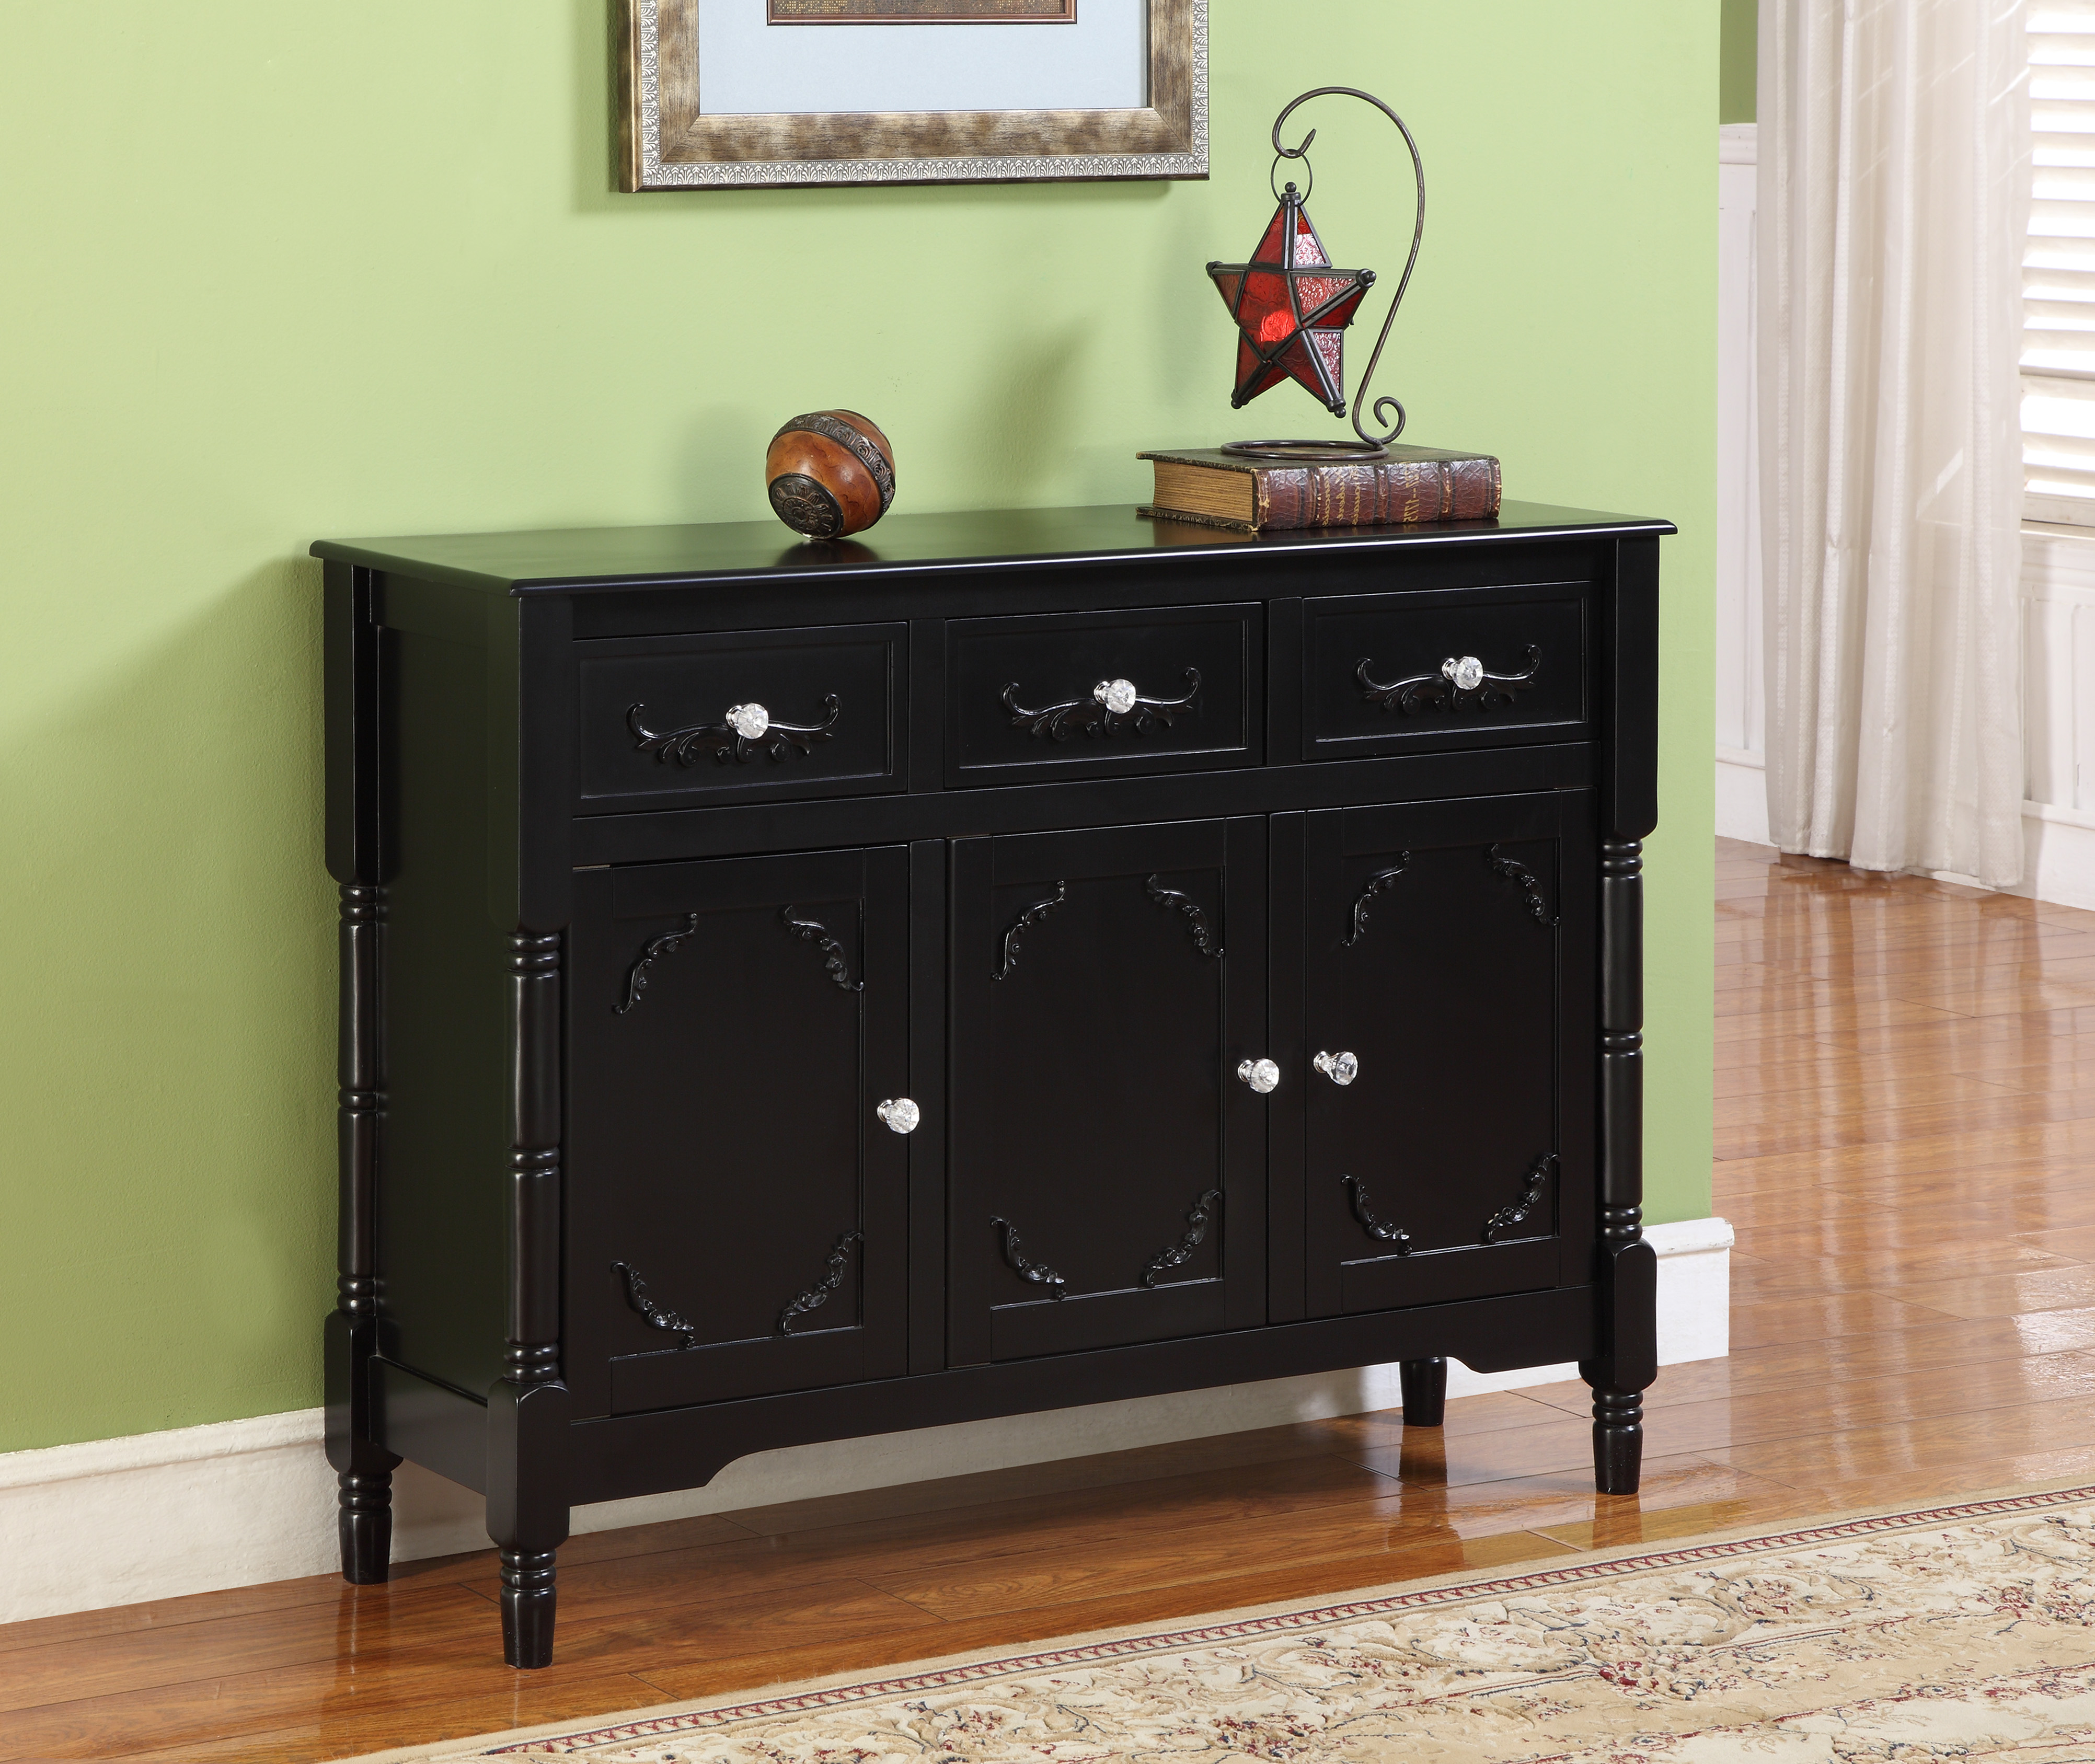 Charmant Camden Black Wood Contemporary Sideboard Buffet Display Console Table With  Storage Drawers U0026 Doors Image 1